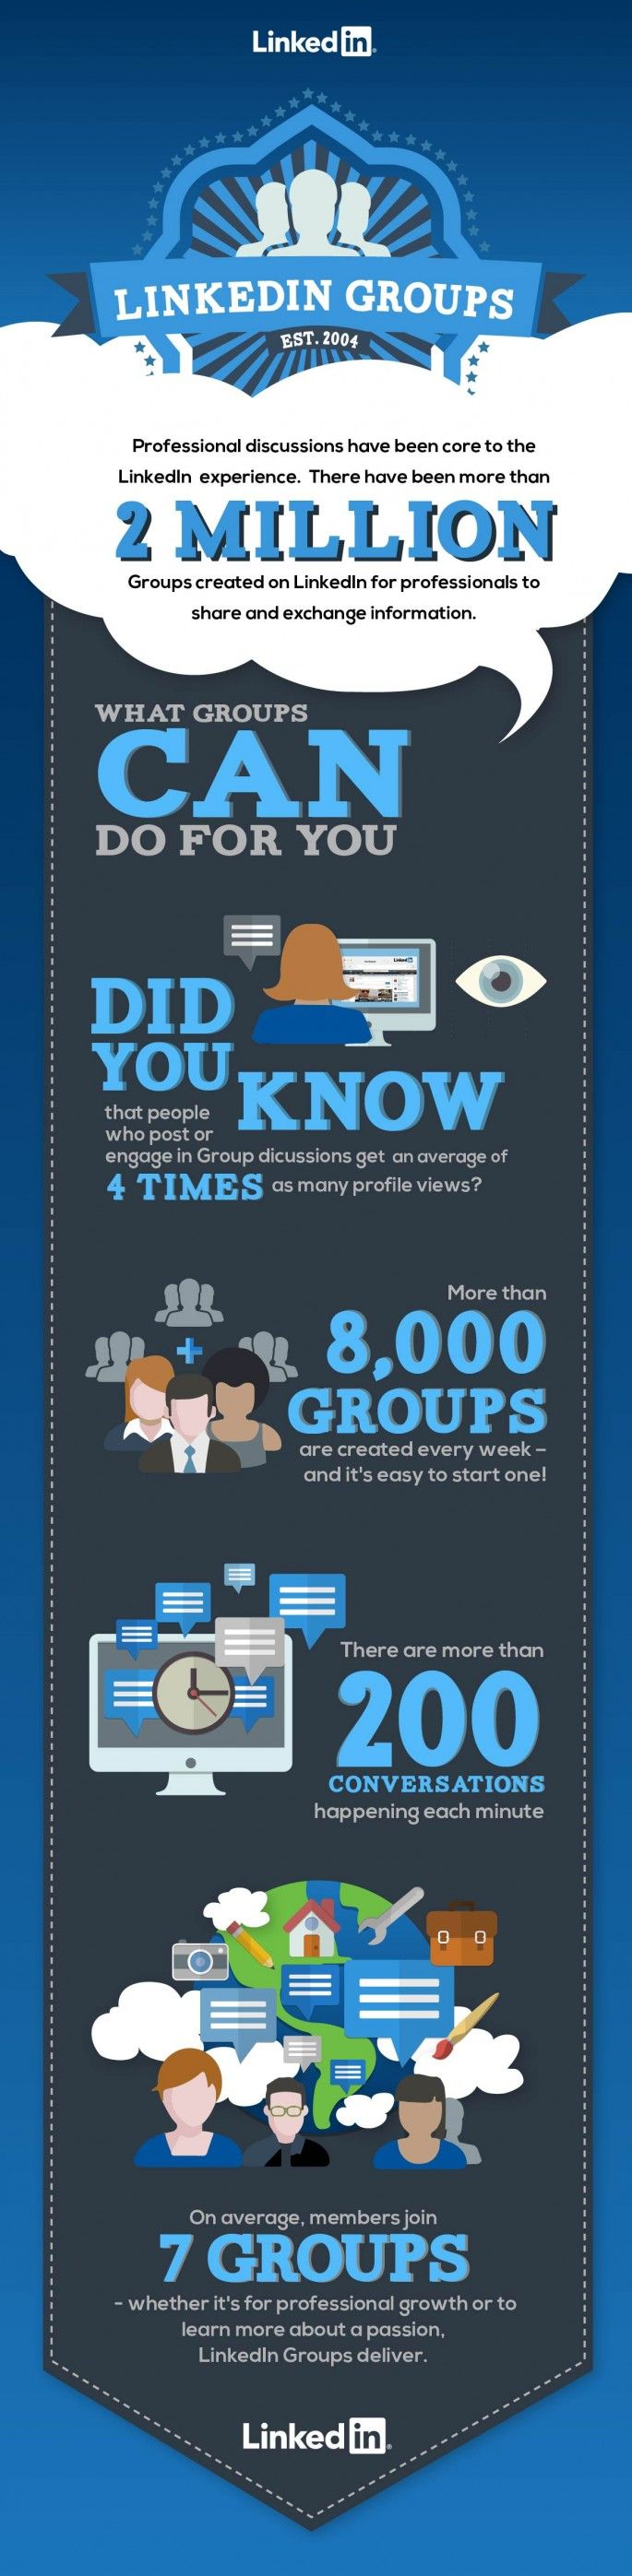 What LinkedIn Groups Can Do For You